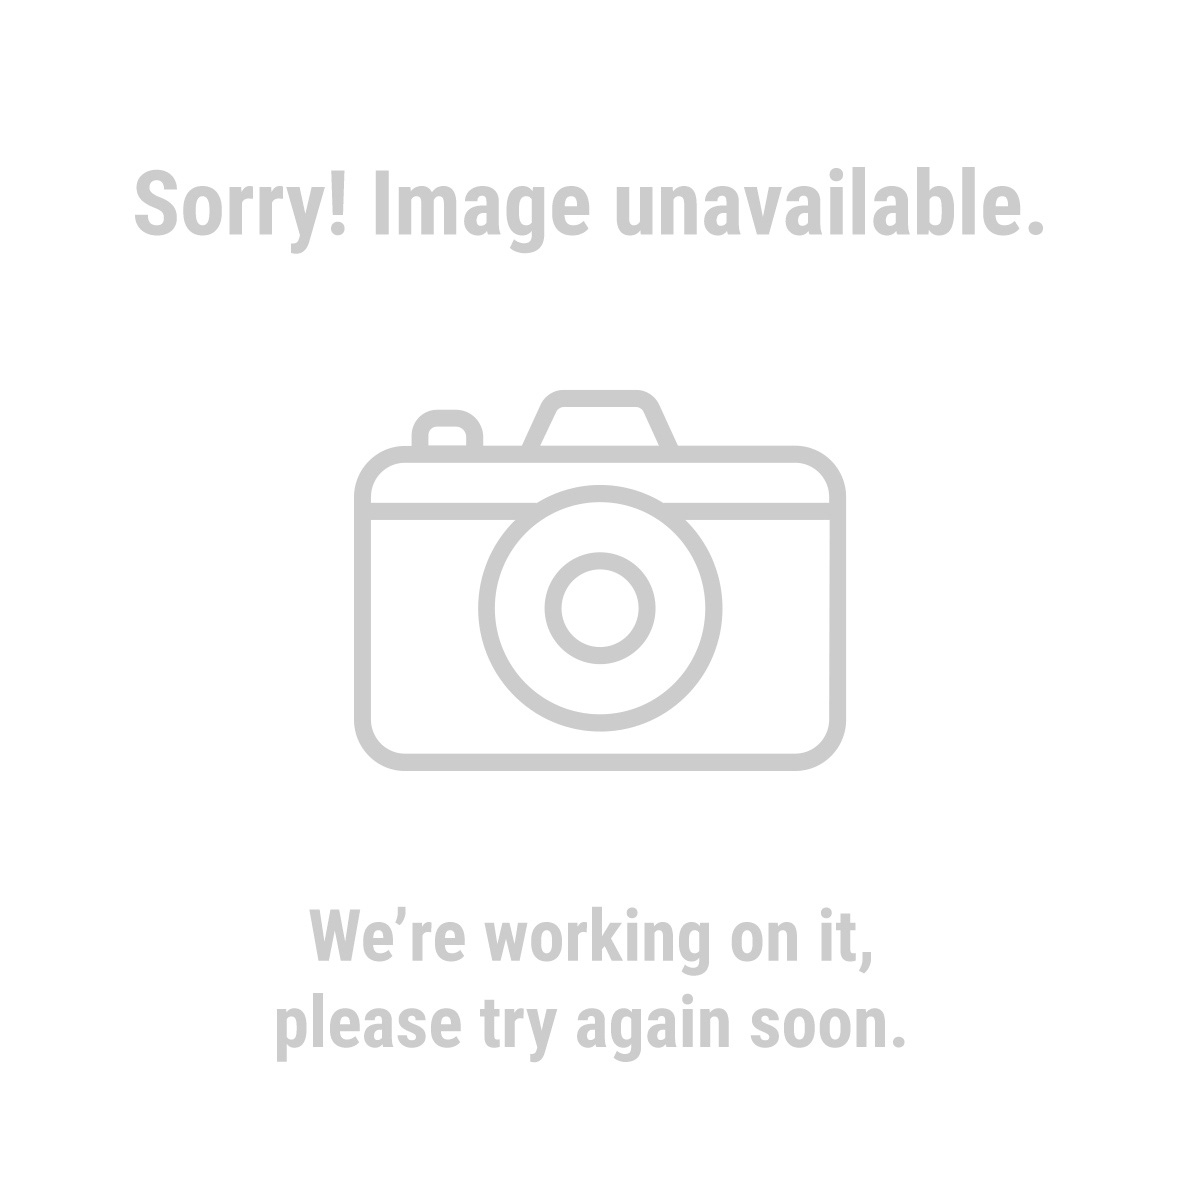 HFT 46576 55 Yd. x 1-7/8 In. Super Clear Packaging Tape